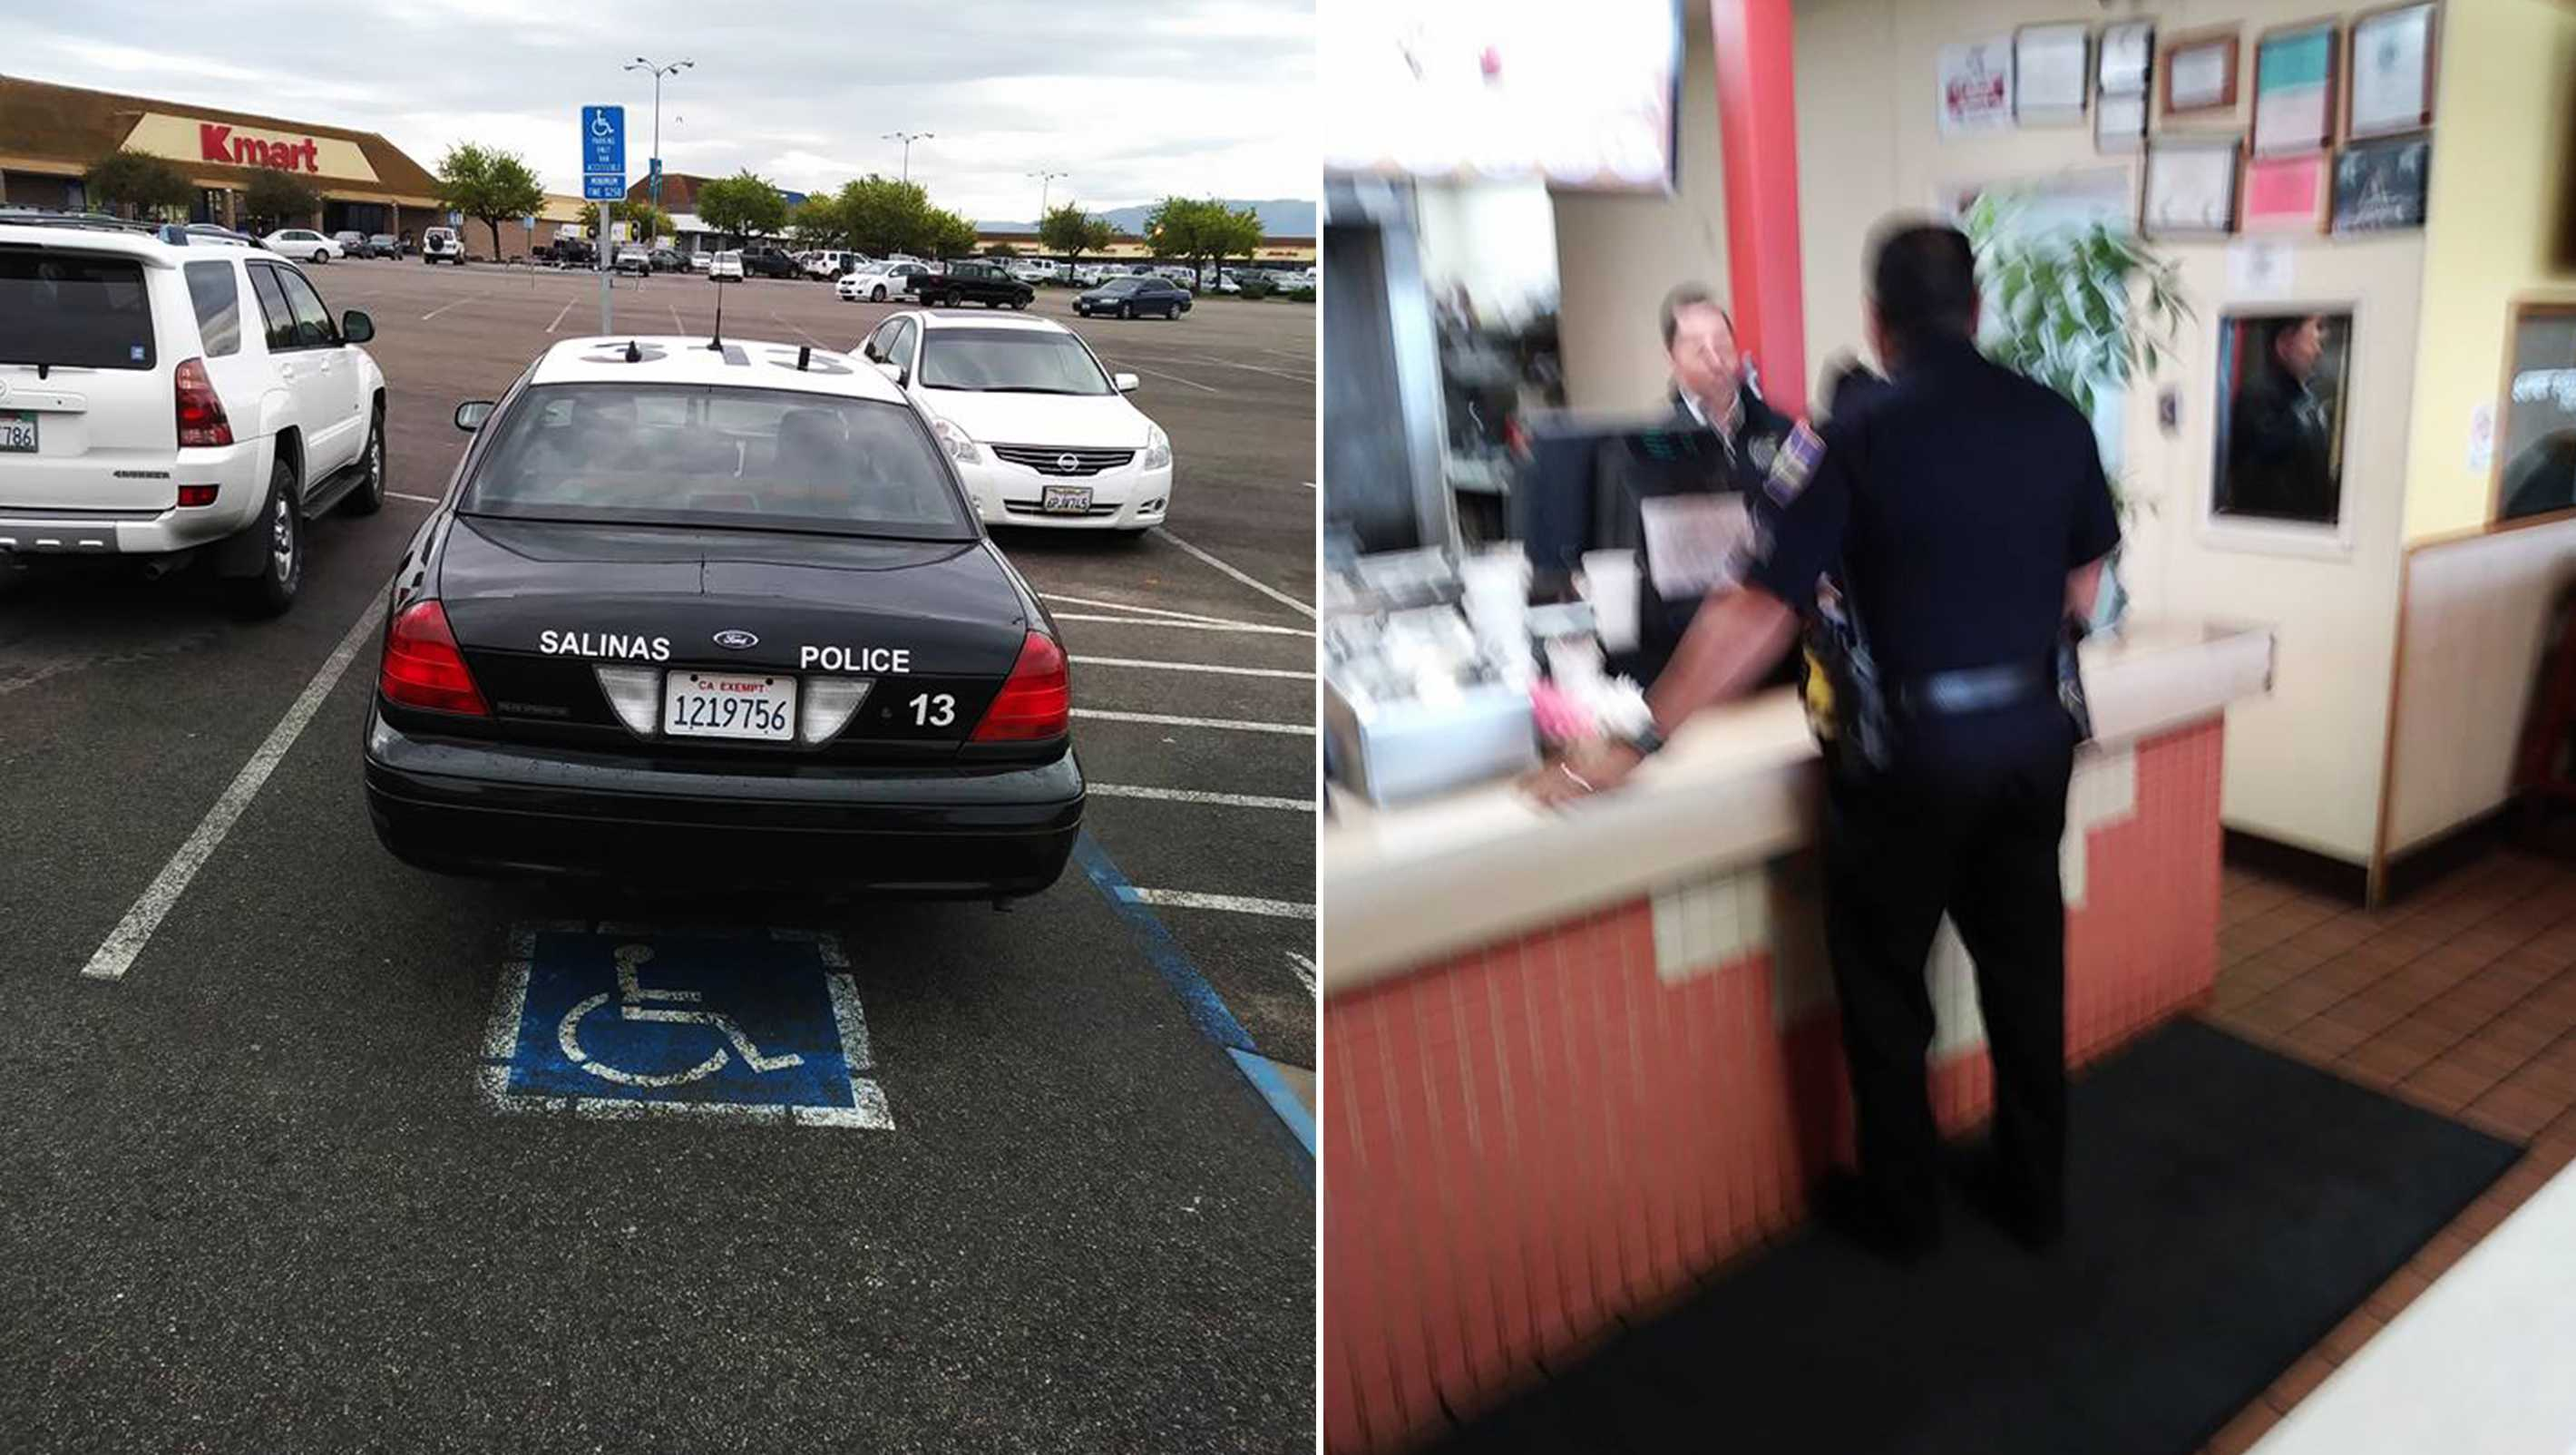 Salinas police car in handicap spot